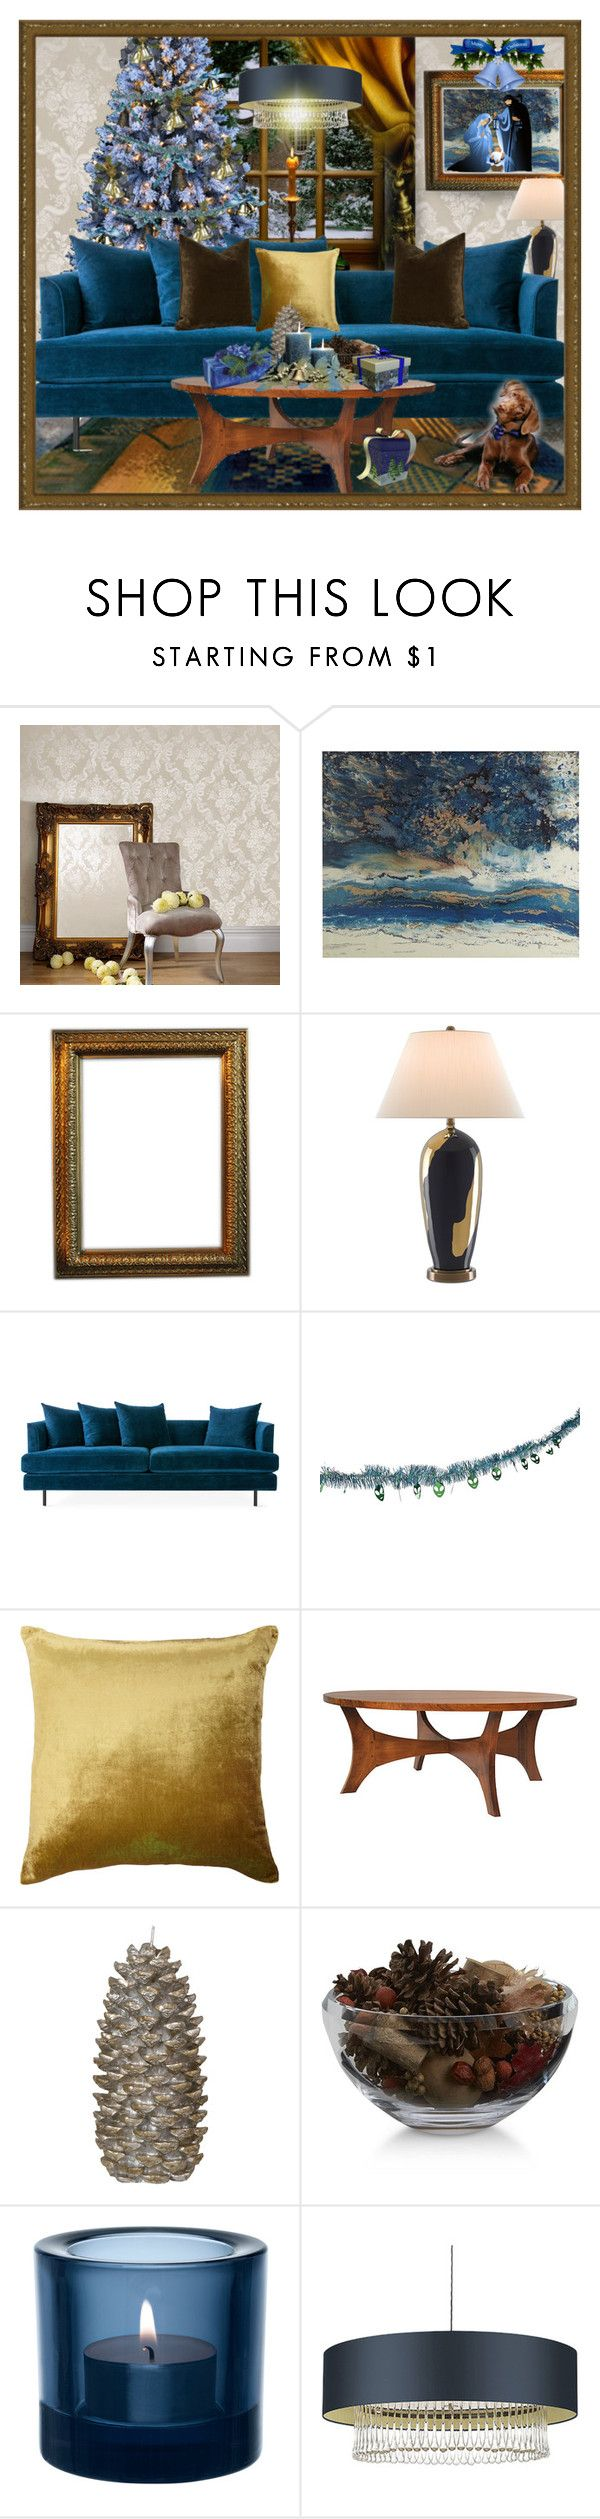 """""""Untitled #5427"""" by julissag ❤ liked on Polyvore featuring interior, interiors, interior design, home, home decor, interior decorating, Graham & Brown, Ralph Lauren Home, Pier 1 Imports and Currey & Company"""